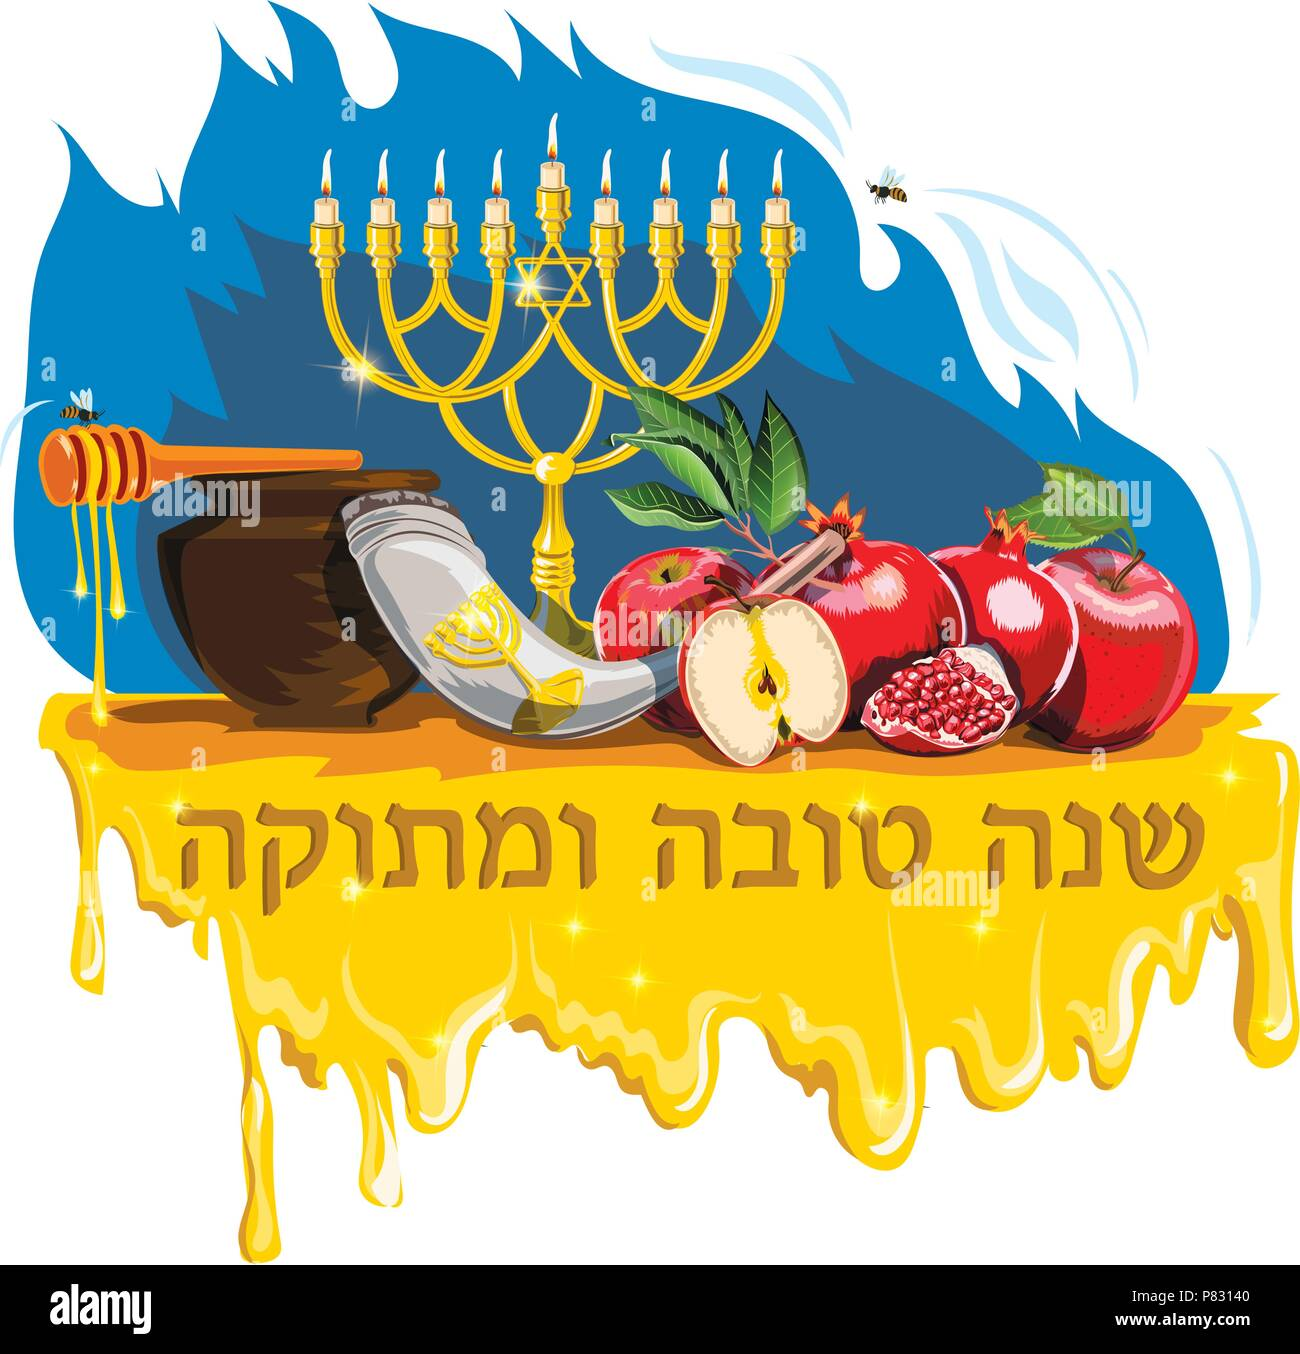 Rosh hashanah card stock photos rosh hashanah card stock images vector collection of labels and elements for jewish new year hebrew text english translation m4hsunfo